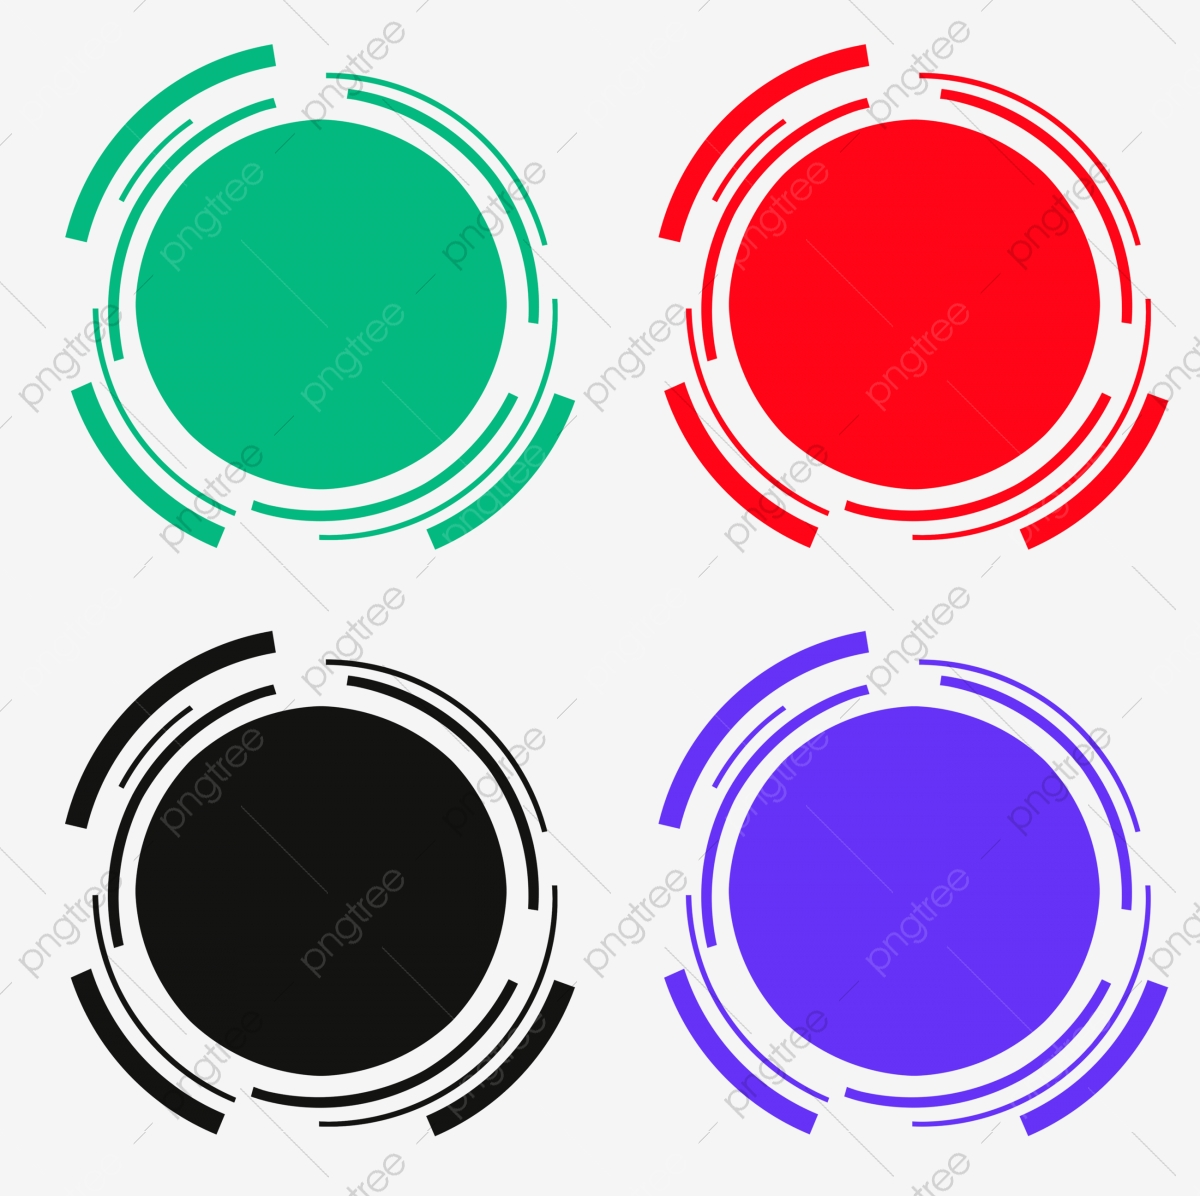 Round Circle Digital Electronic Banner Png Psd Four Colors.